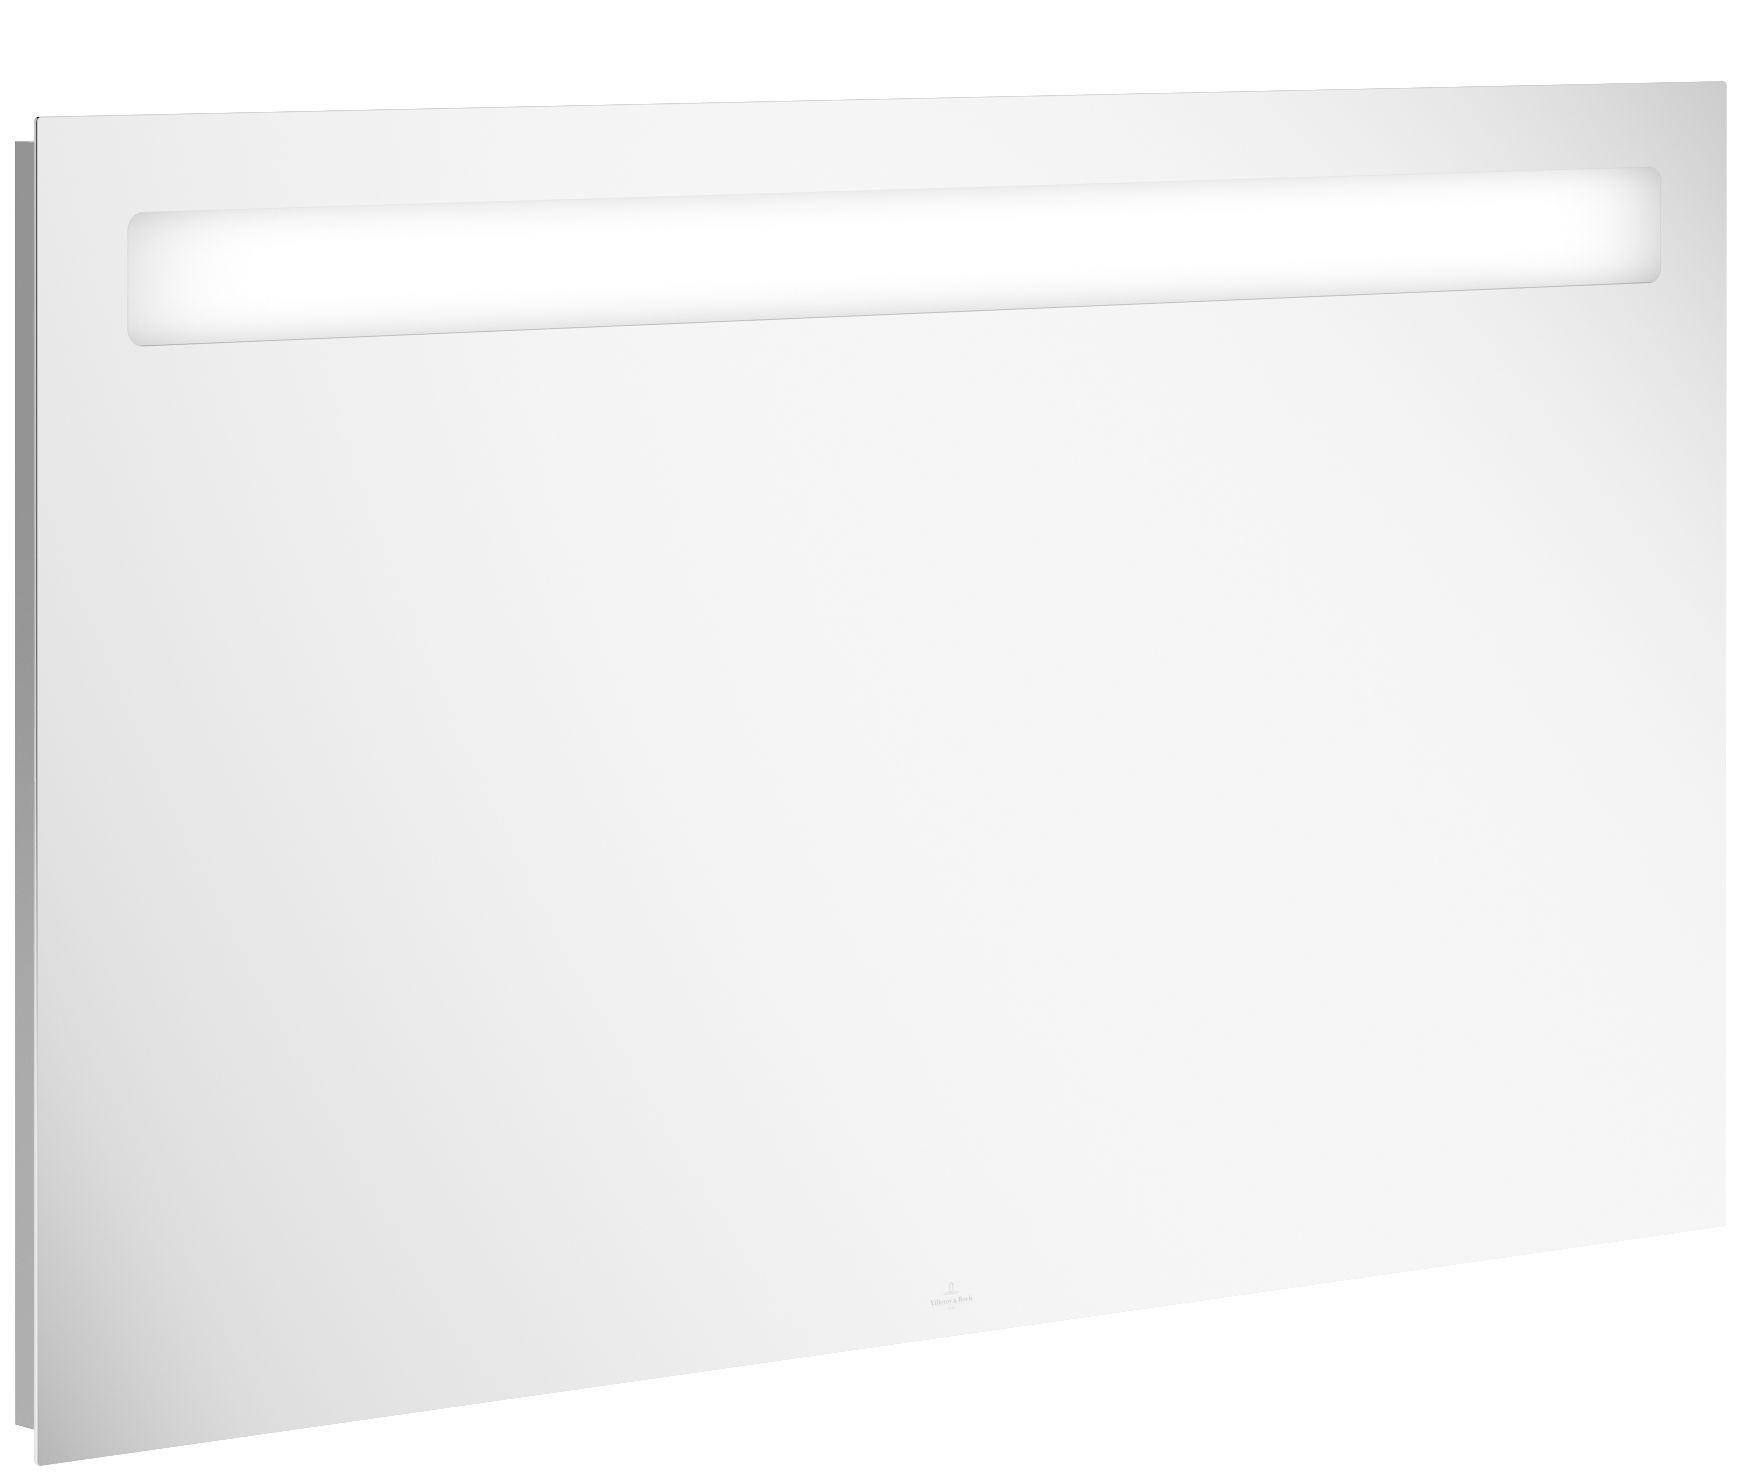 Villeroy & Boch More to See 14 Spiegel mit LED-Beleuchtung B:100 cm A4291000